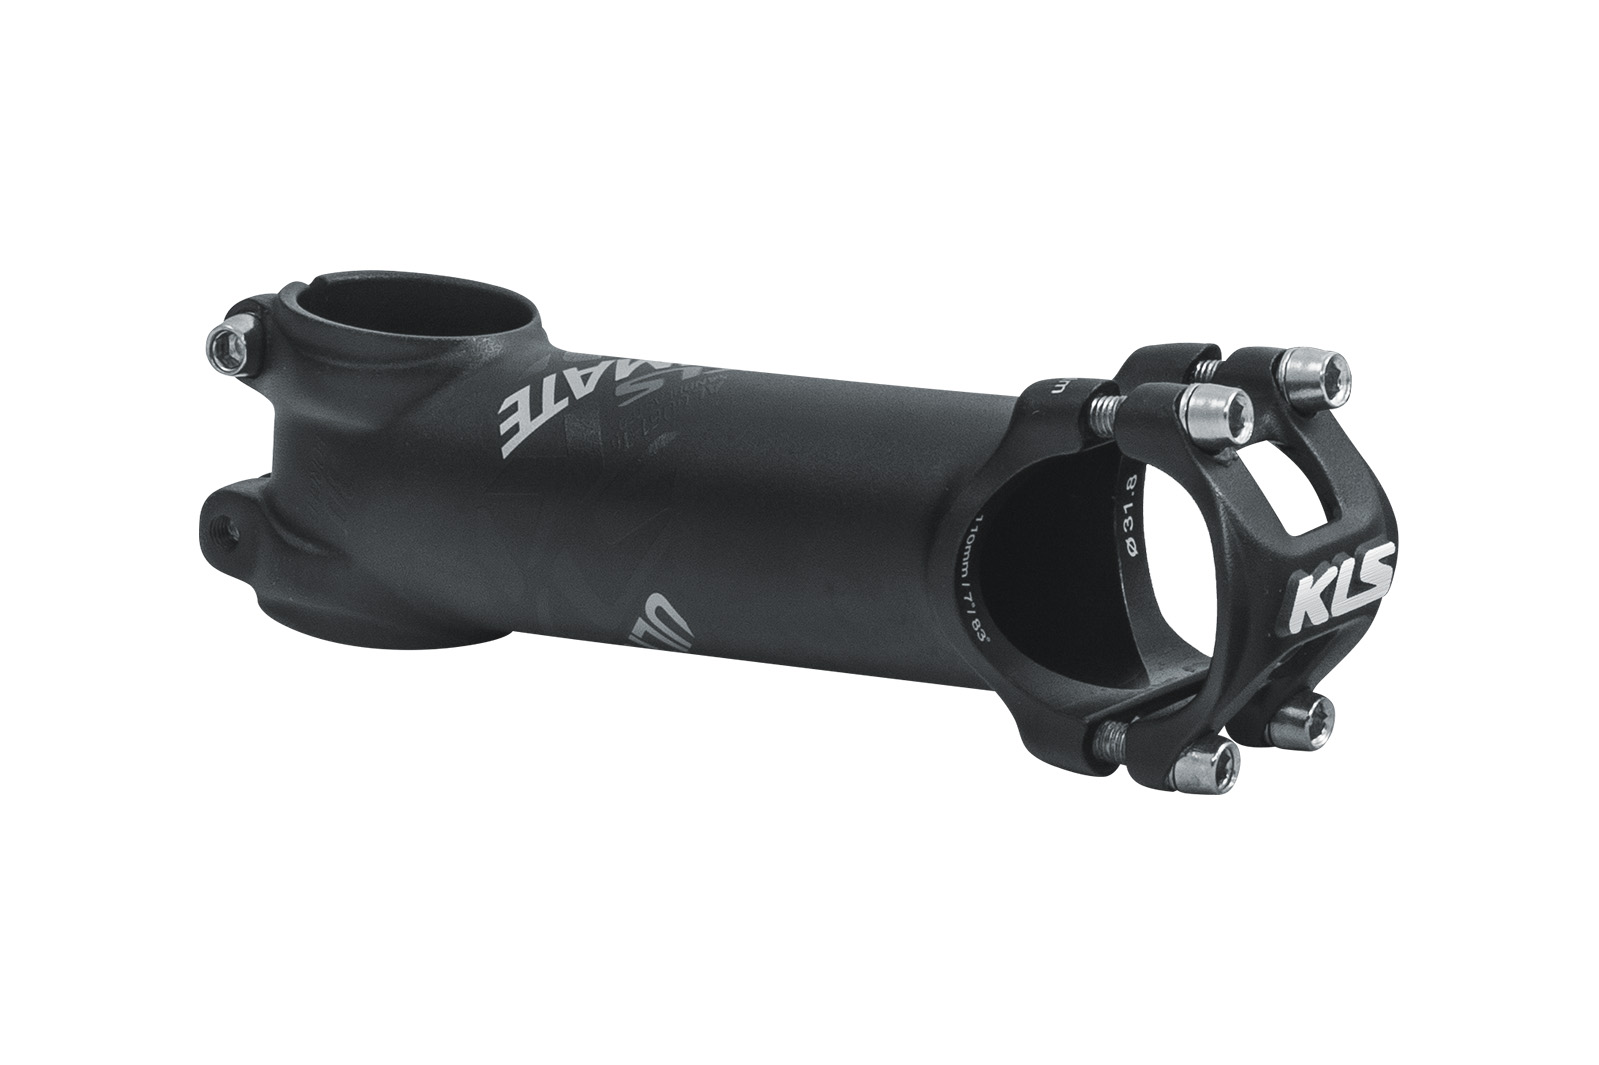 Představec KLS ULTIMATE XC 70 black 017, 90mm